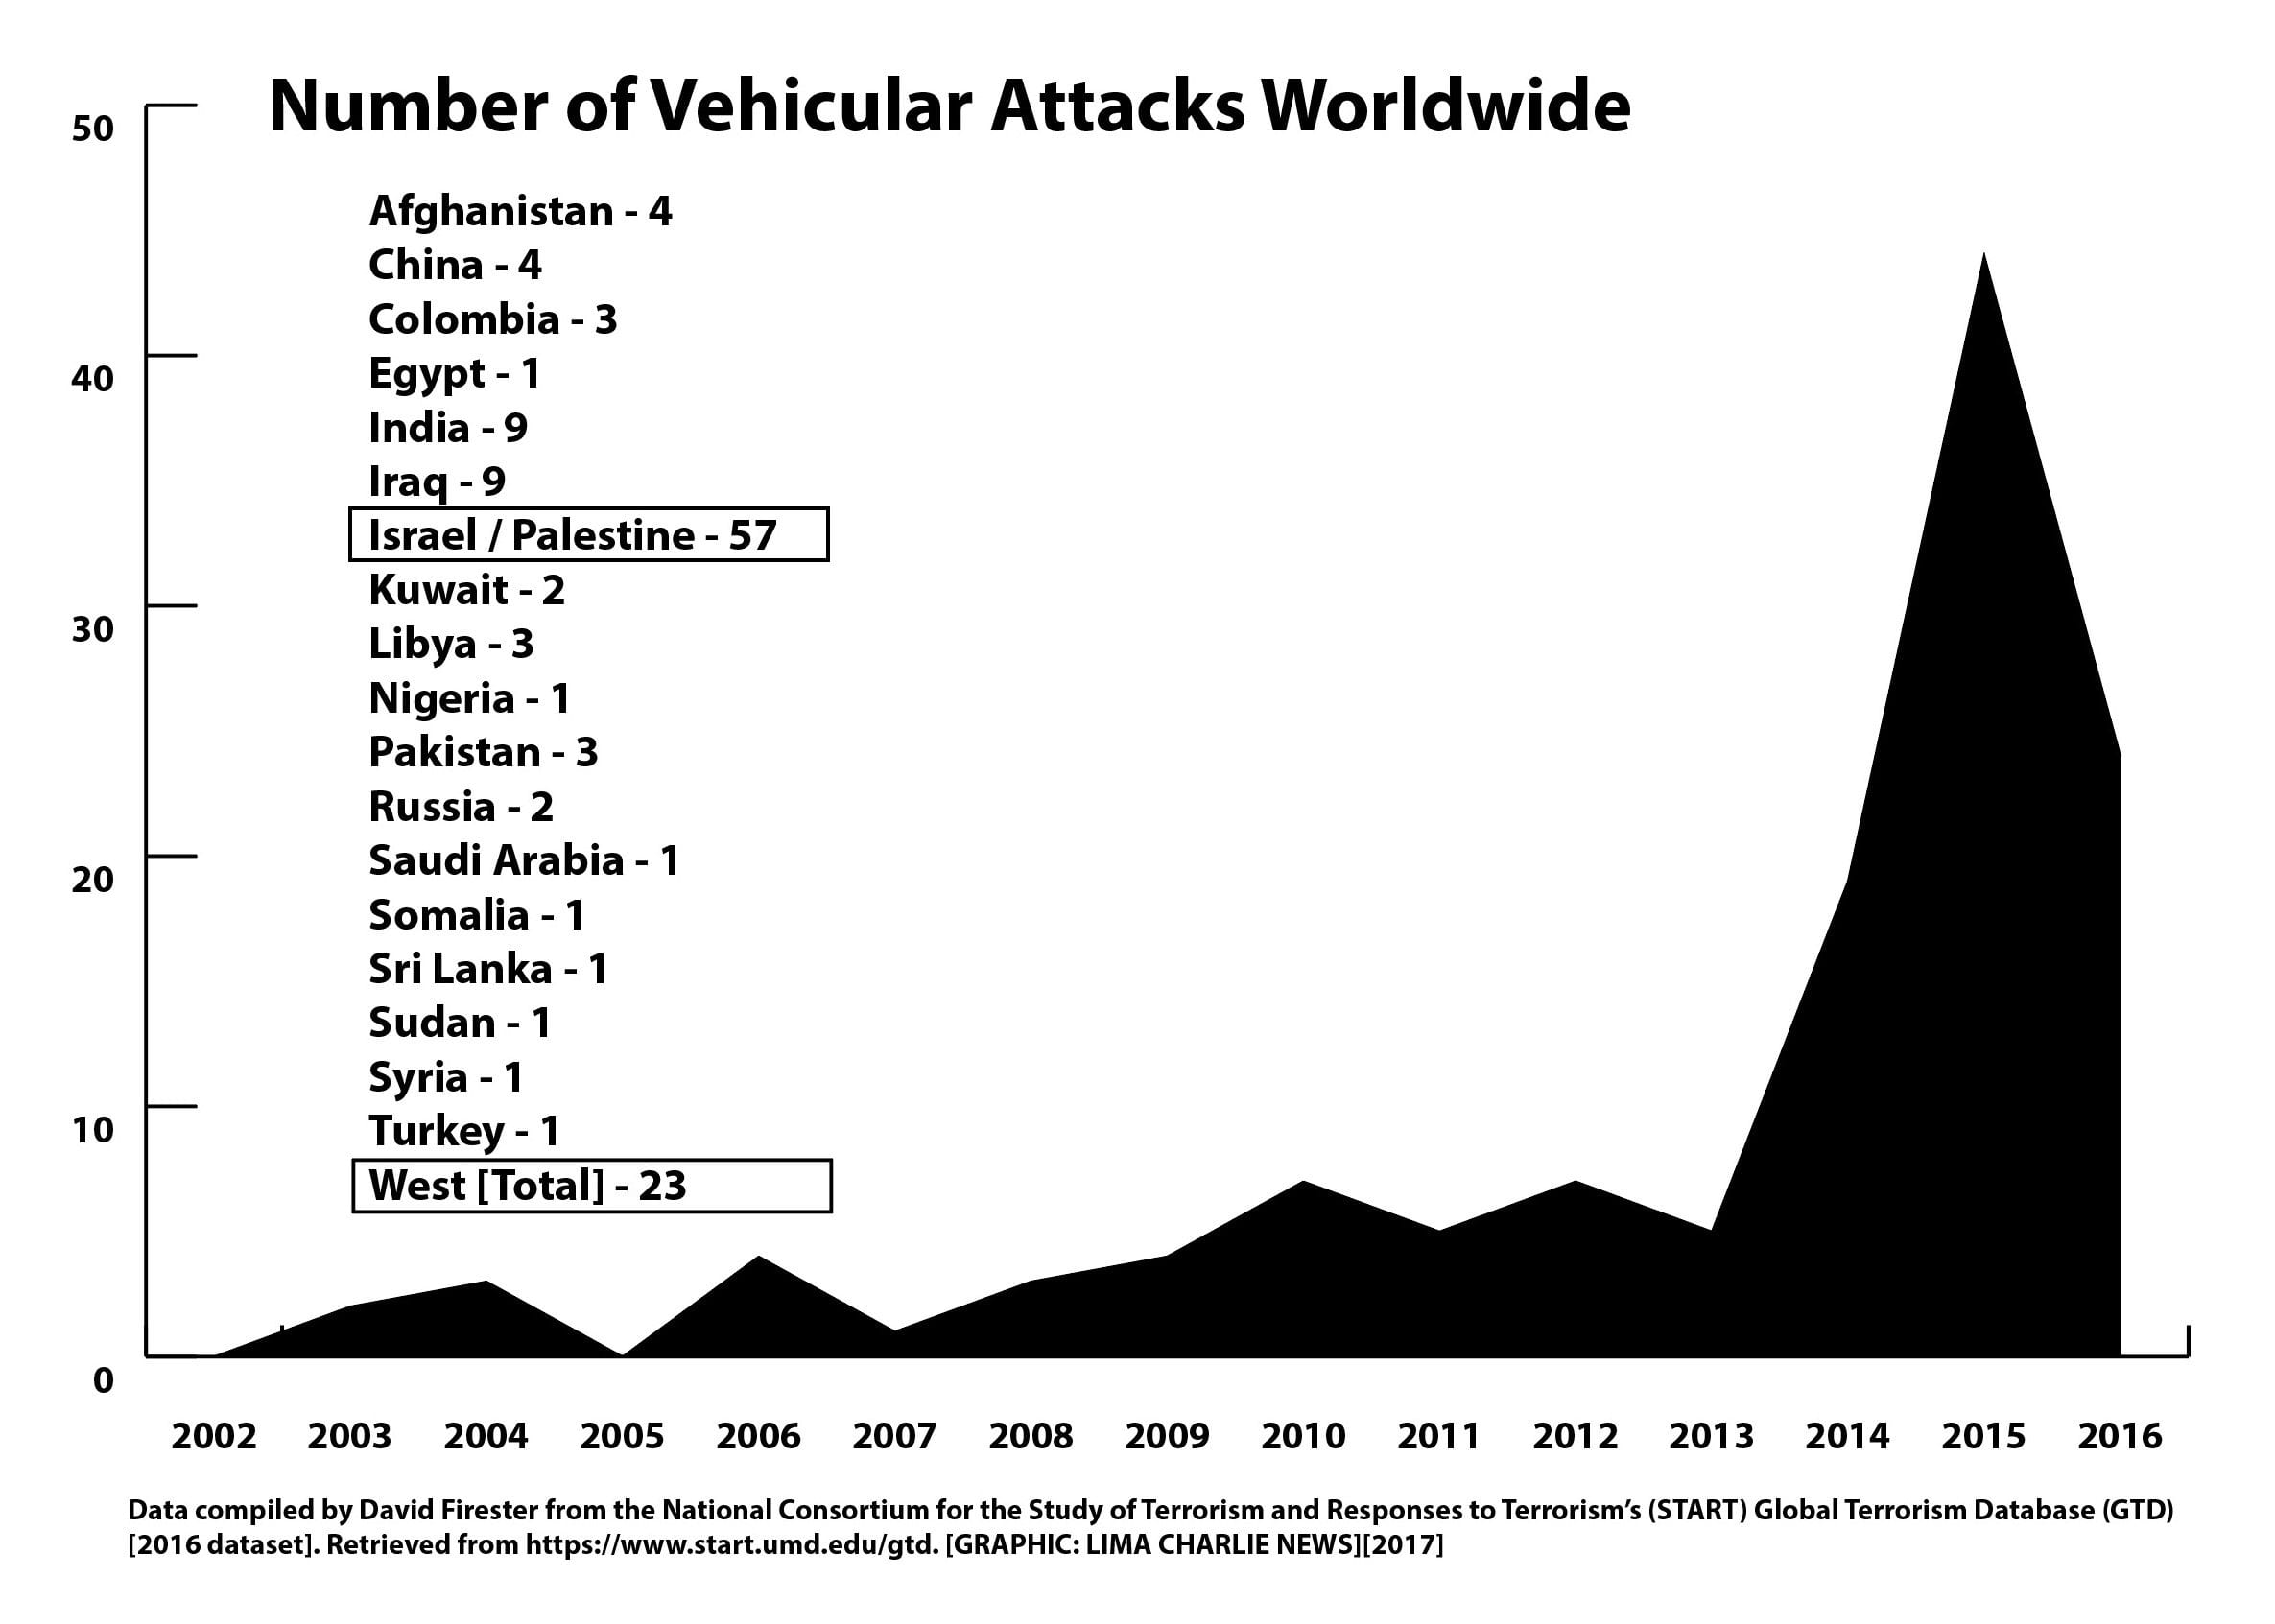 Image Number of Vehicular Attacks Worldwide [Lima Charlie News]